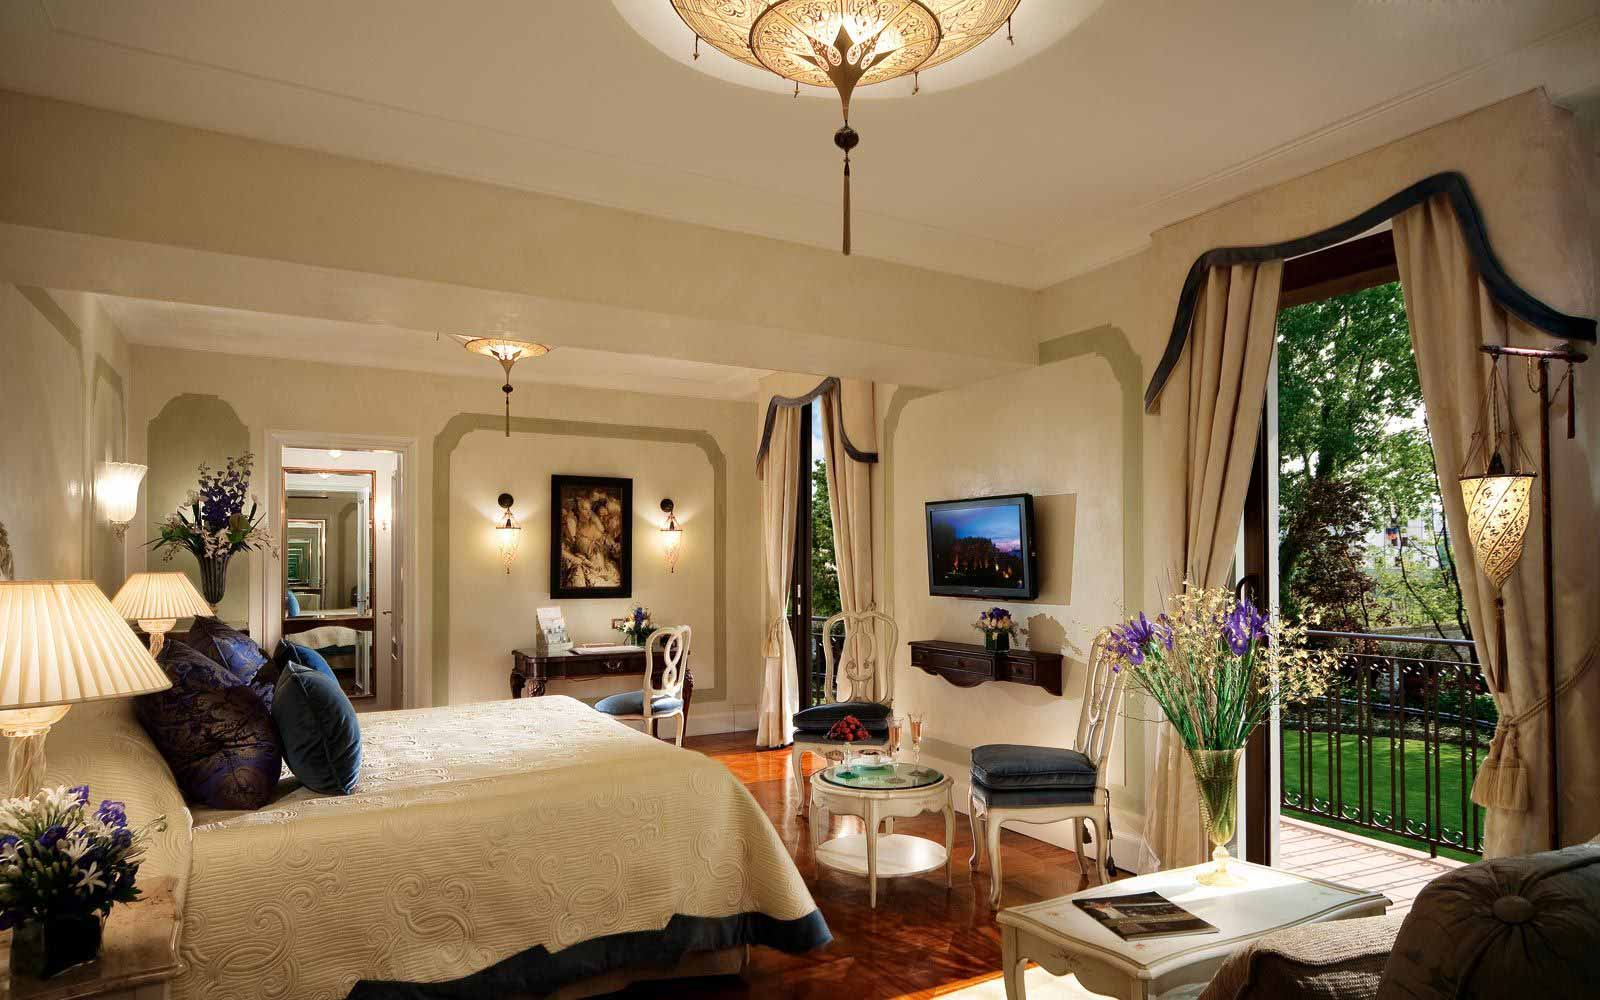 Junior Suite at Belmond Hotel Cipriani